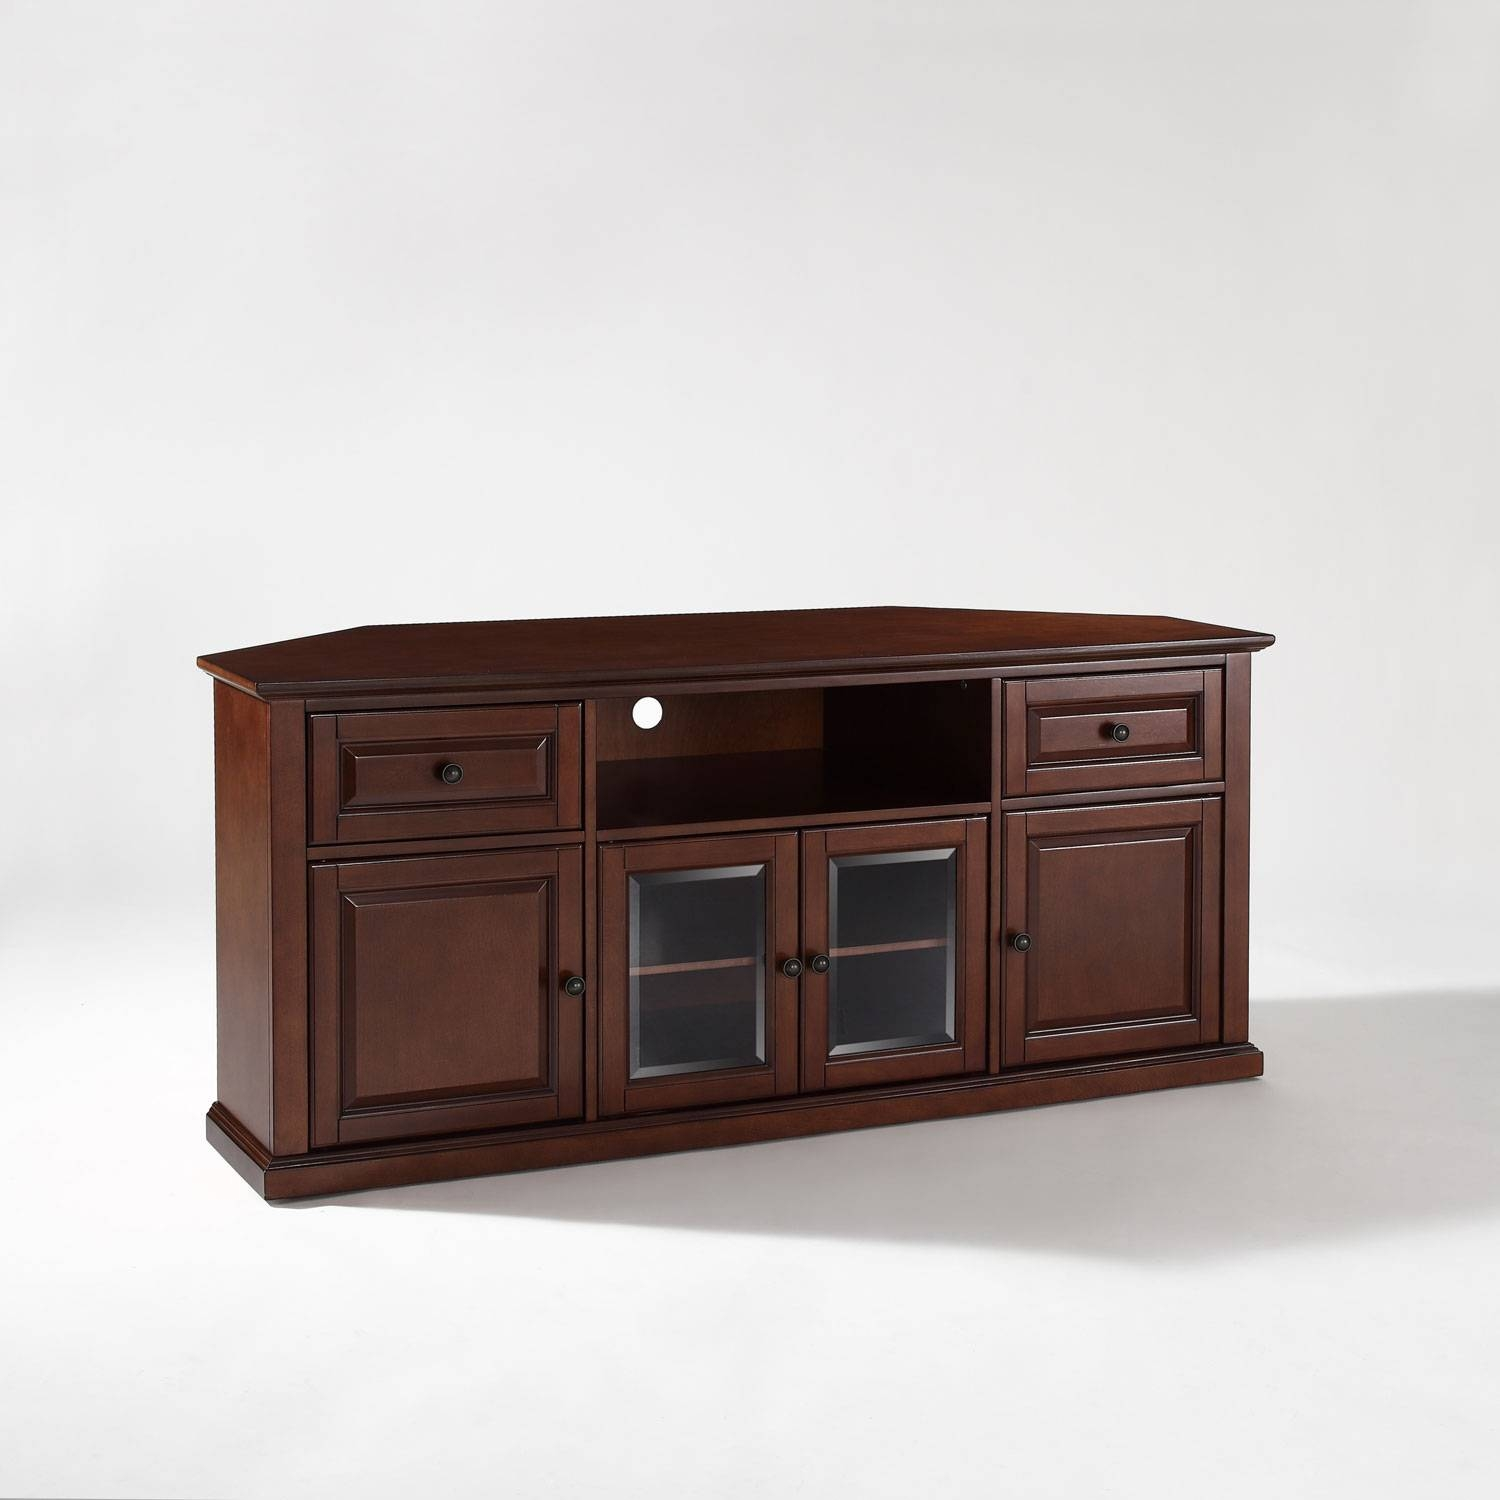 Tv Stands & Cabinets On Sale | Bellacor Pertaining To Mahogany Tv Cabinets (View 14 of 15)